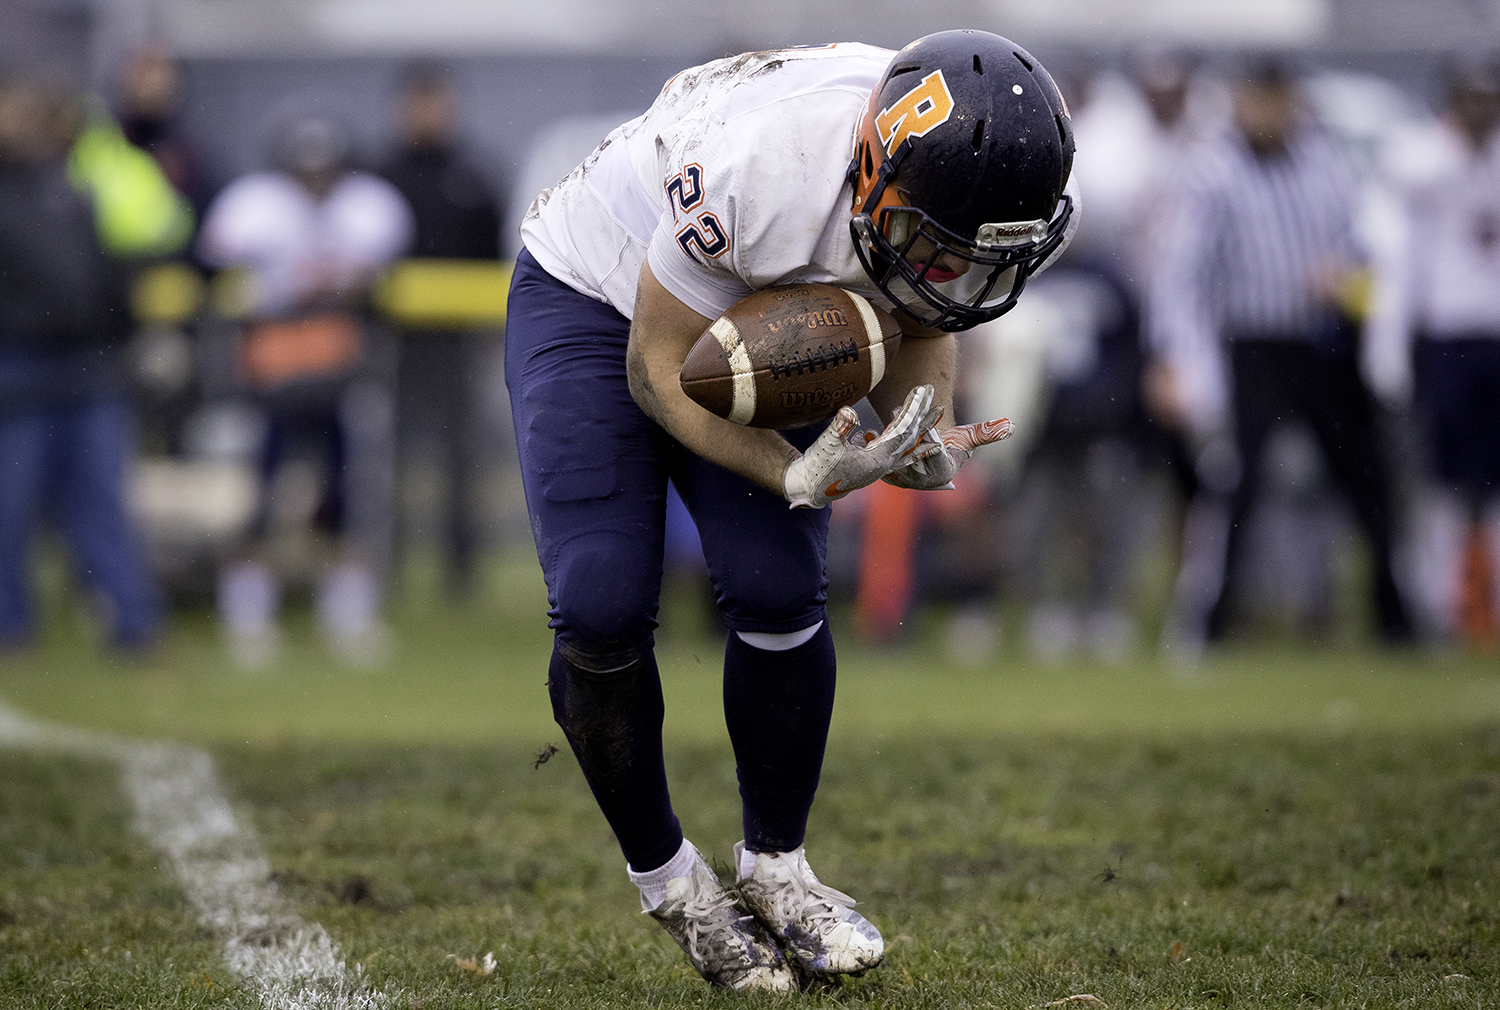 Rochester's Jarrett Reed grabs a kickoff during the Class 4A semifinal at Kankakee Bishop McNamara Saturday, Nov. 17, 2018. [Ted Schurter/The State Journal-Register]